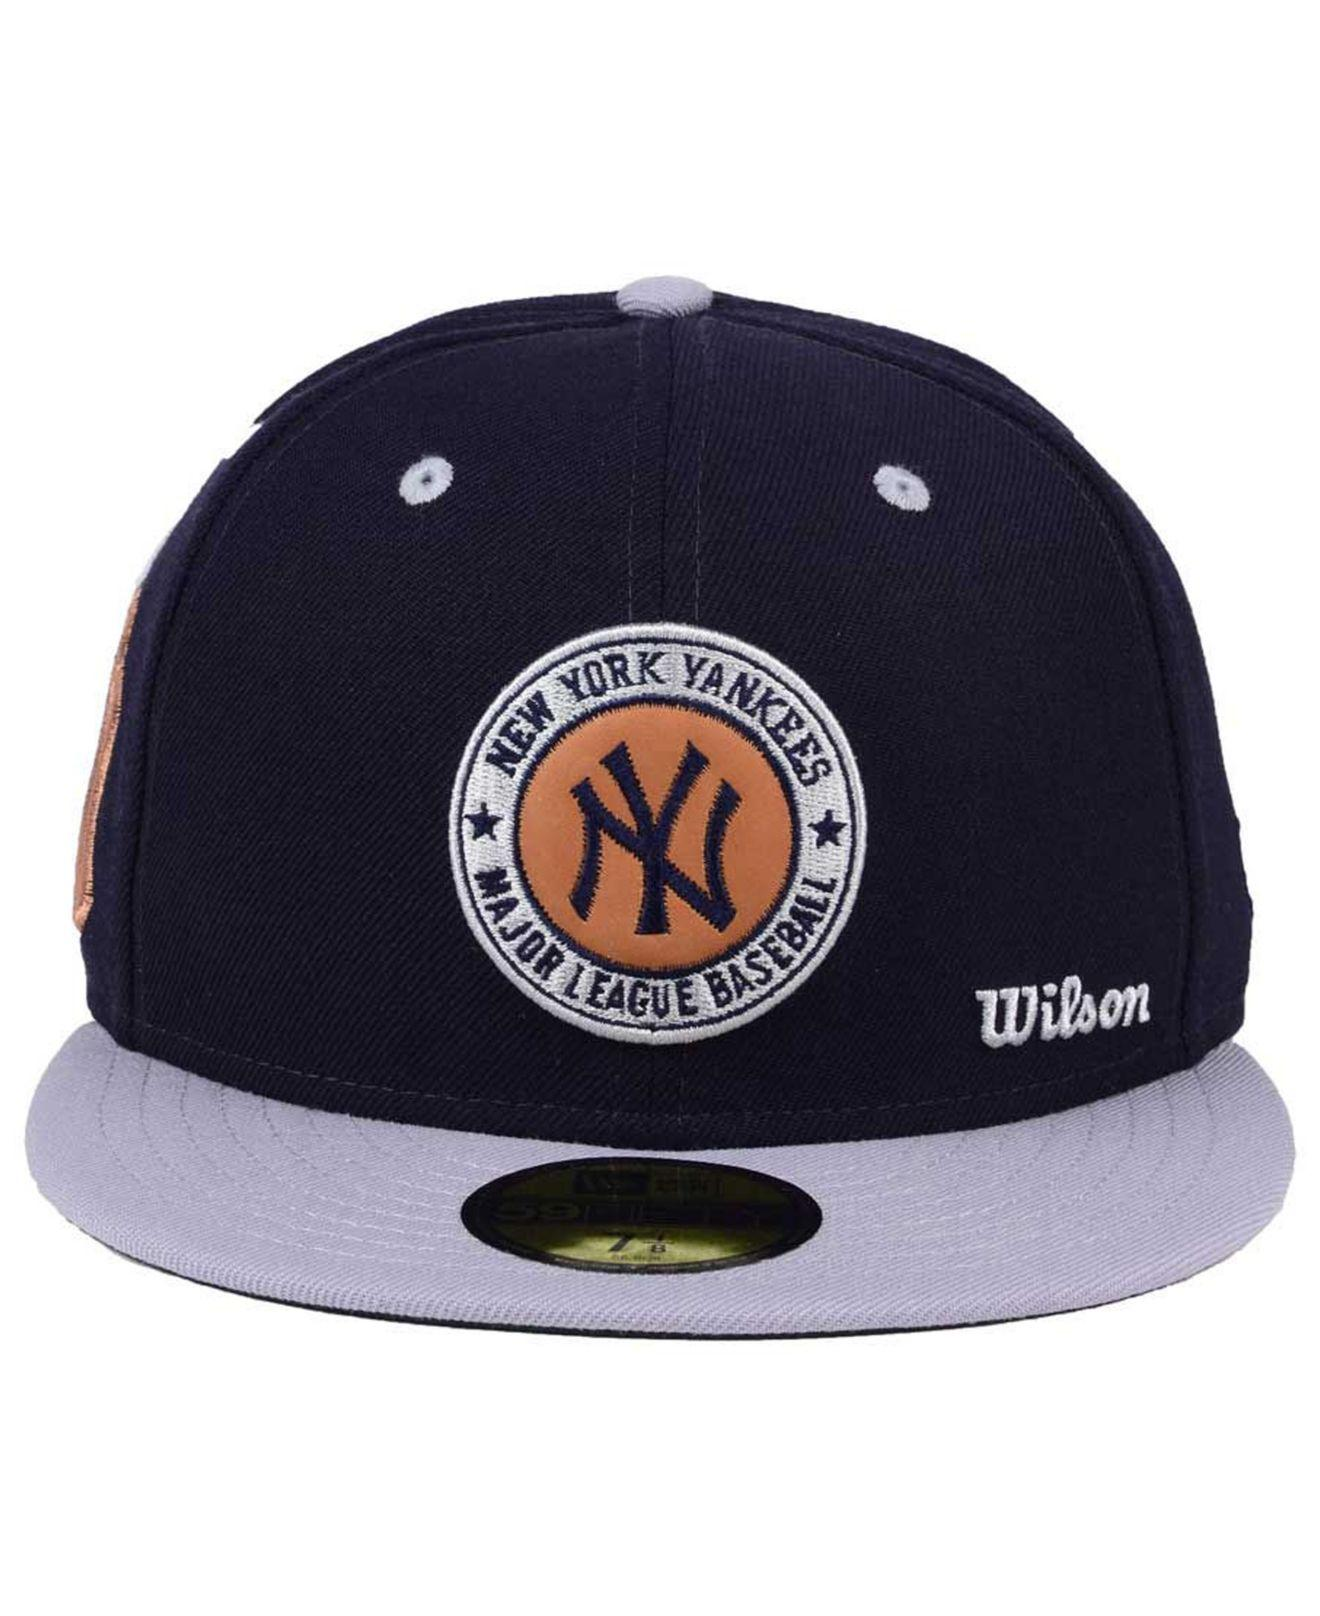 brand new 7675f 43b9c release date lyst ktz new york yankees x wilson circle patch 59fifty fitted  cap in blue